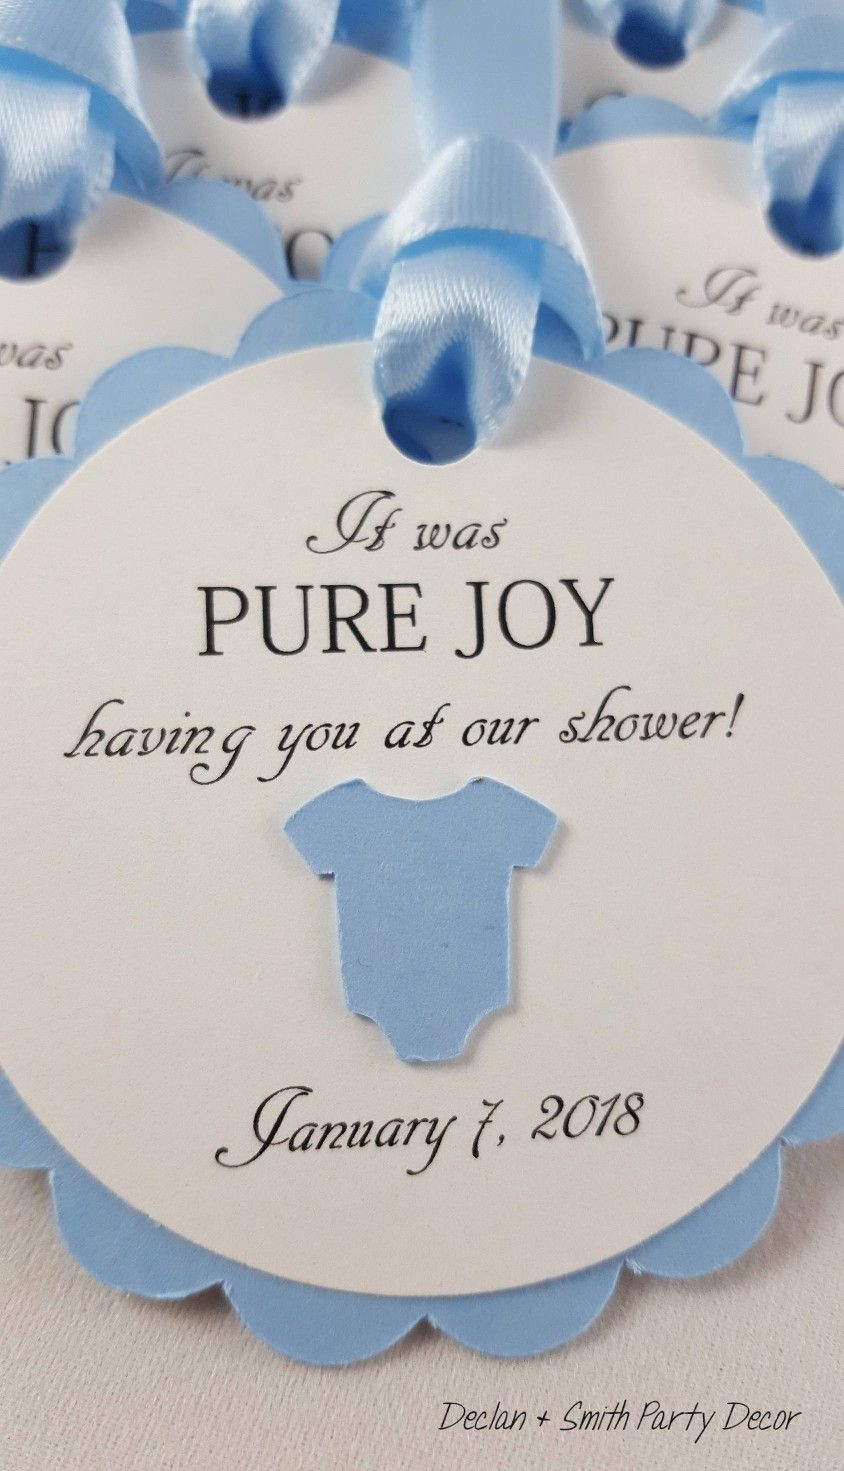 Pin by Declan & Smith on baby shower | Pinterest | Baby shower ...